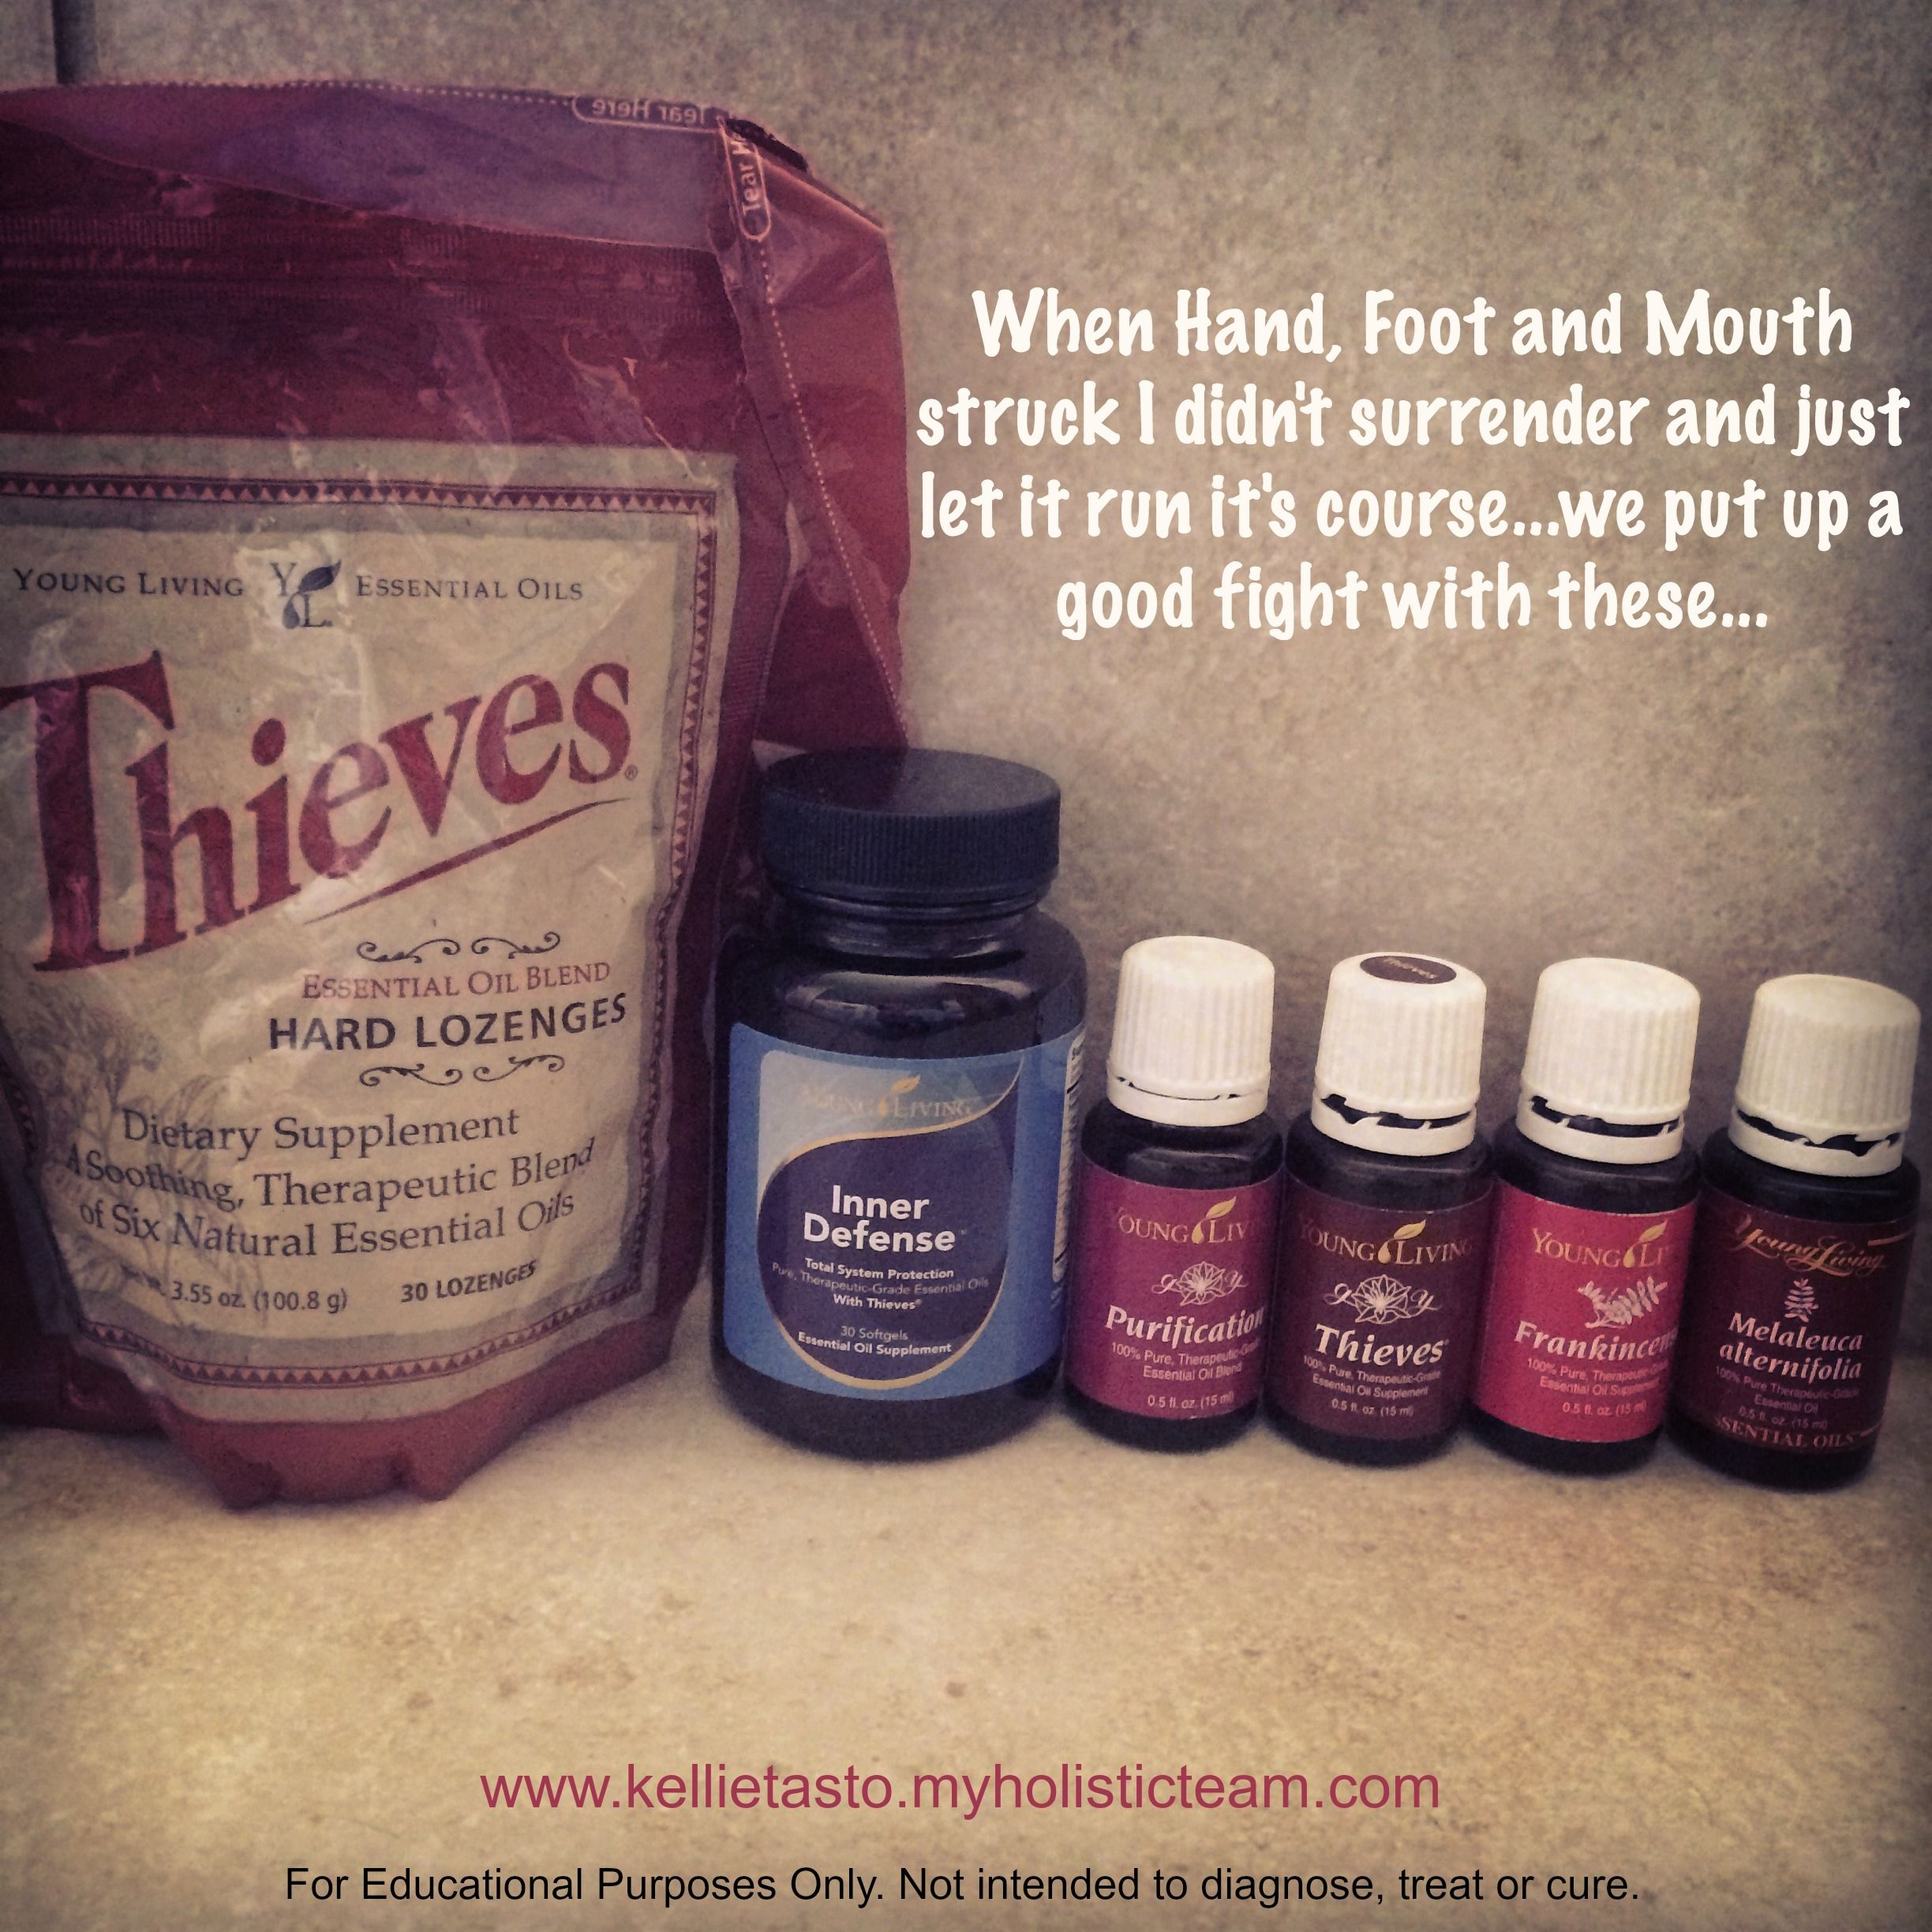 Thieves Oil Dilution Diffused Combo Of Purification Thieves Diluted Thieves In A